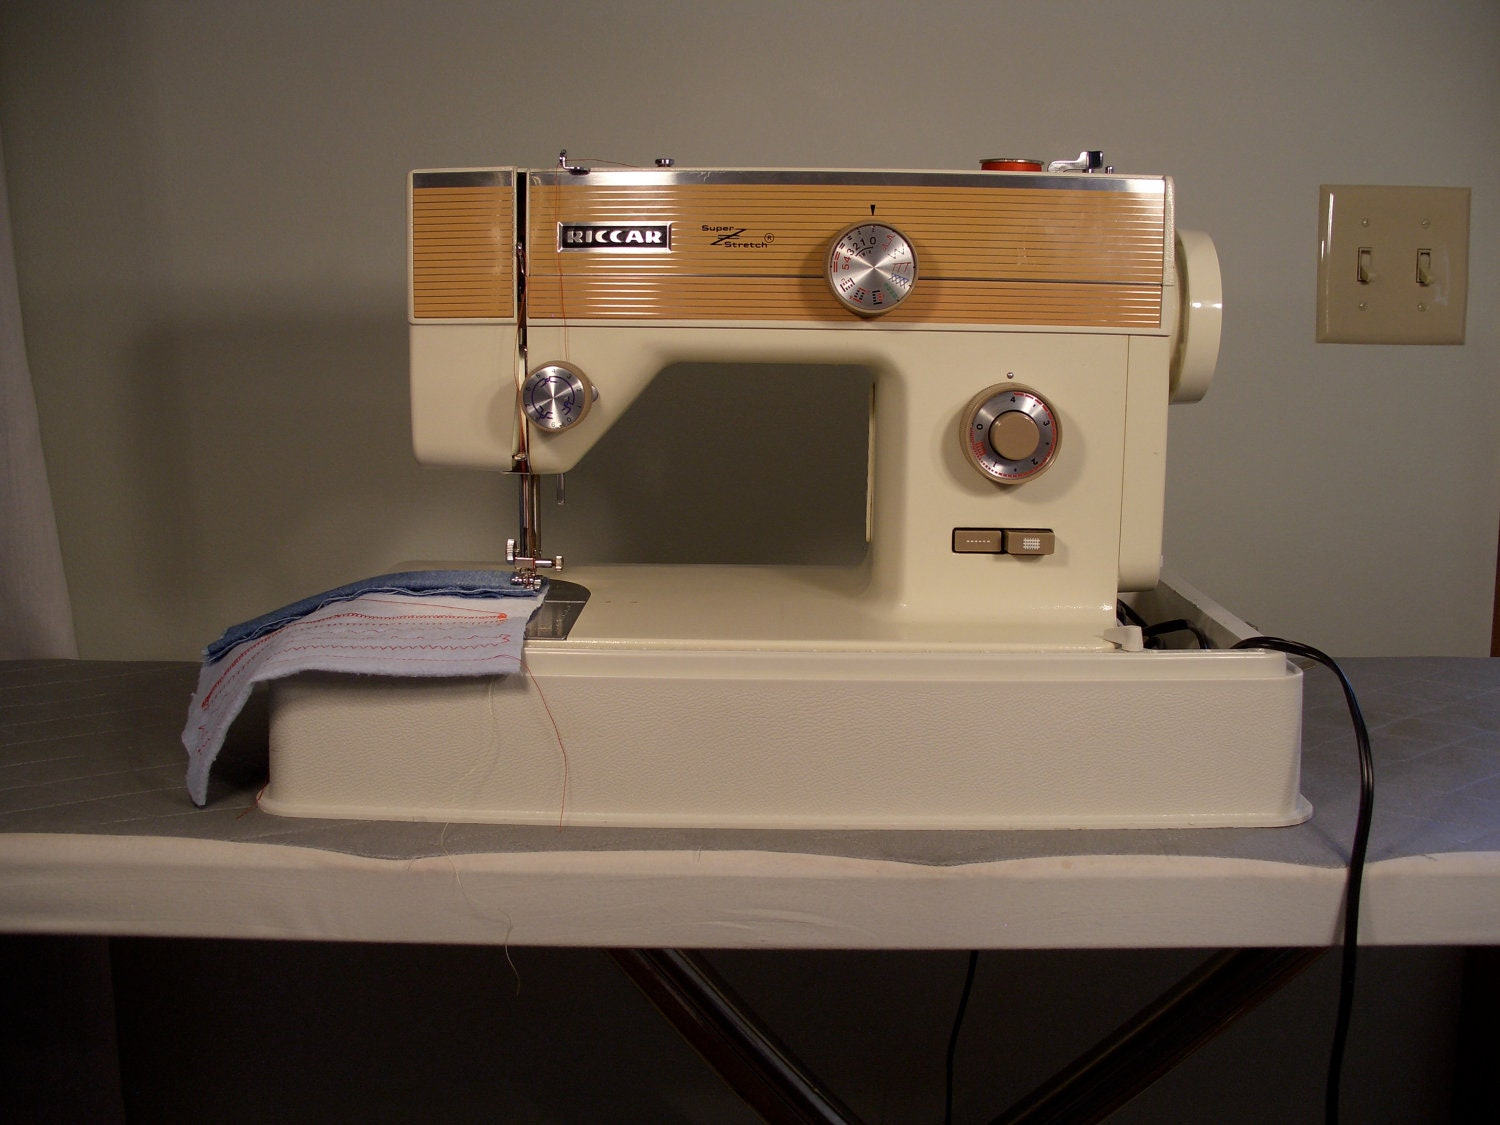 Riccar Super Stretch Sewing Machine Fully Reconditioned By